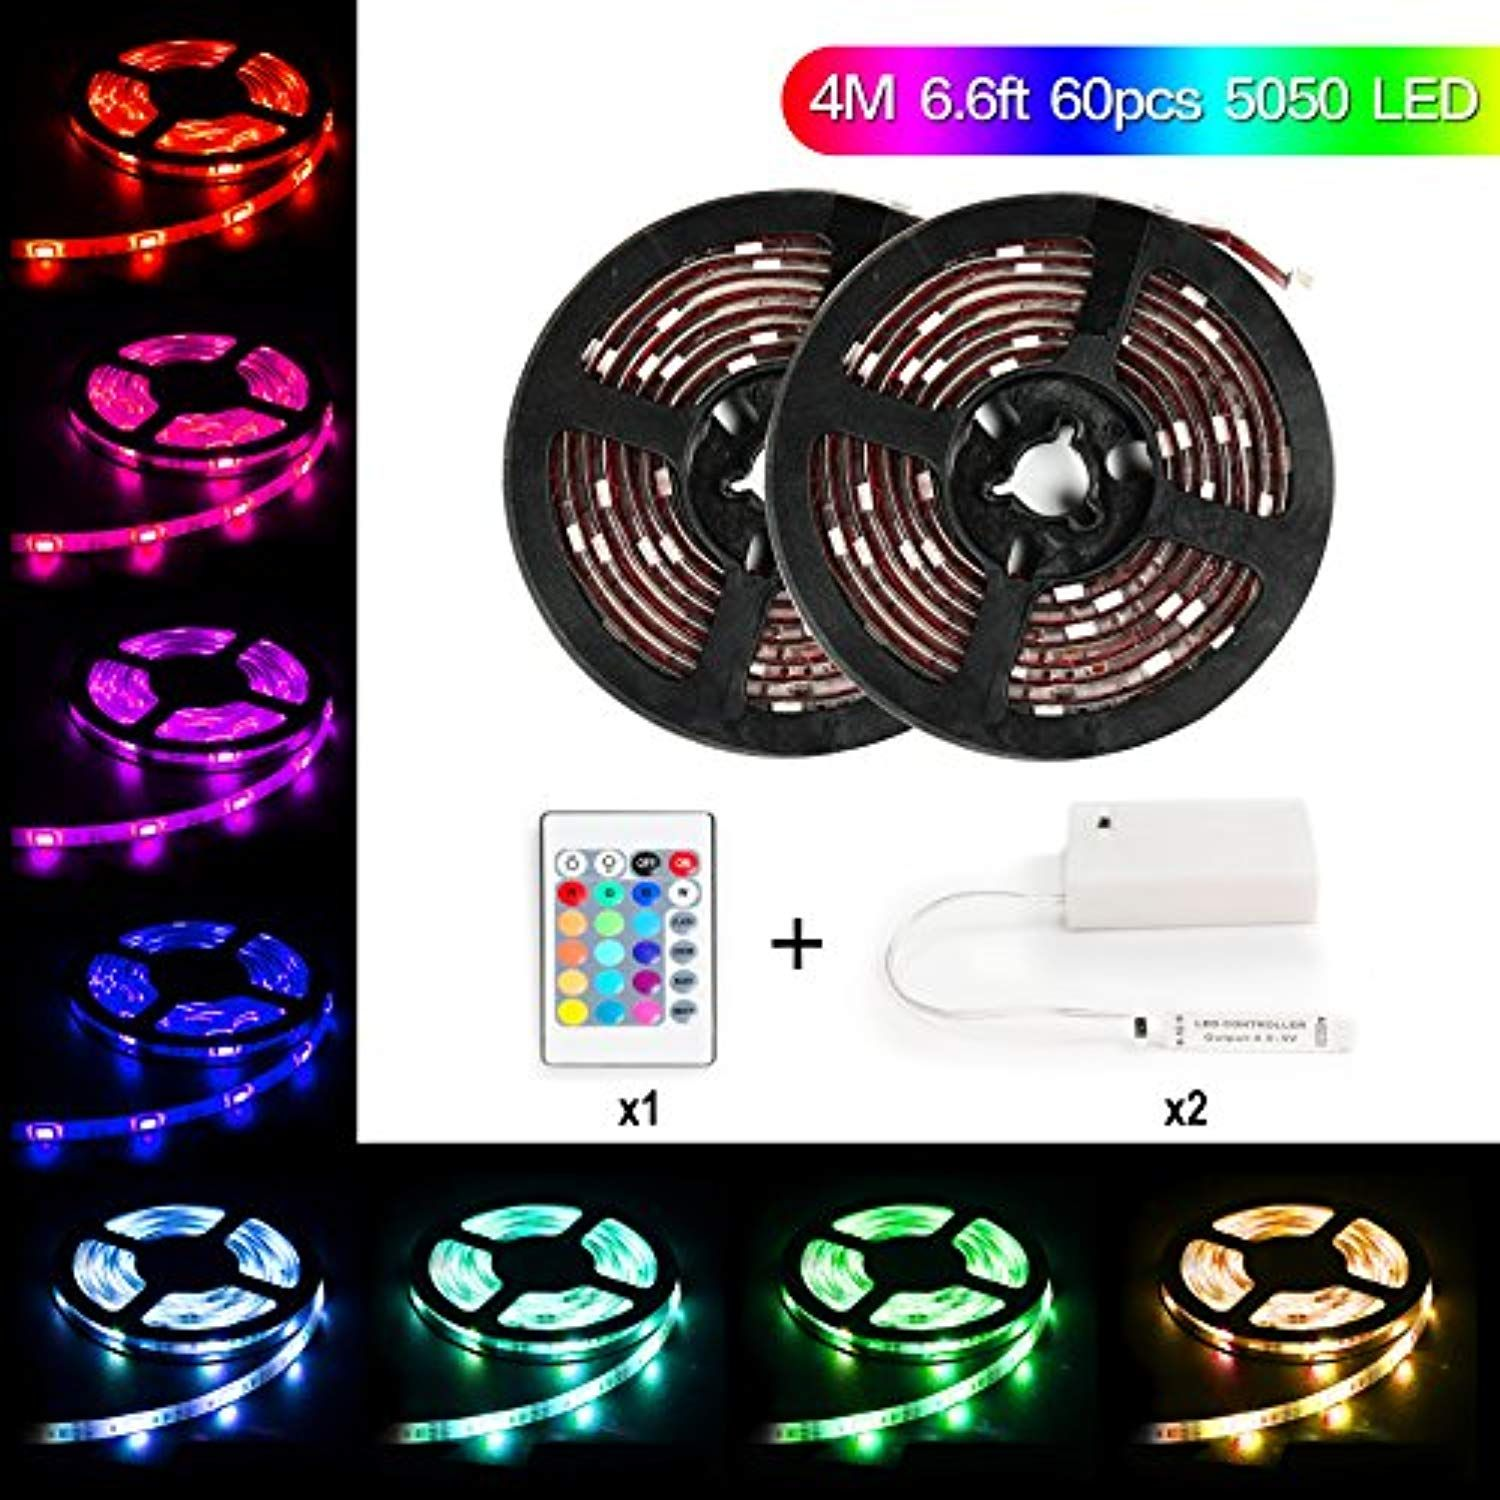 Led Light Strip Battery Powered Meilly 4m 13 2ft Ip65 60pcs